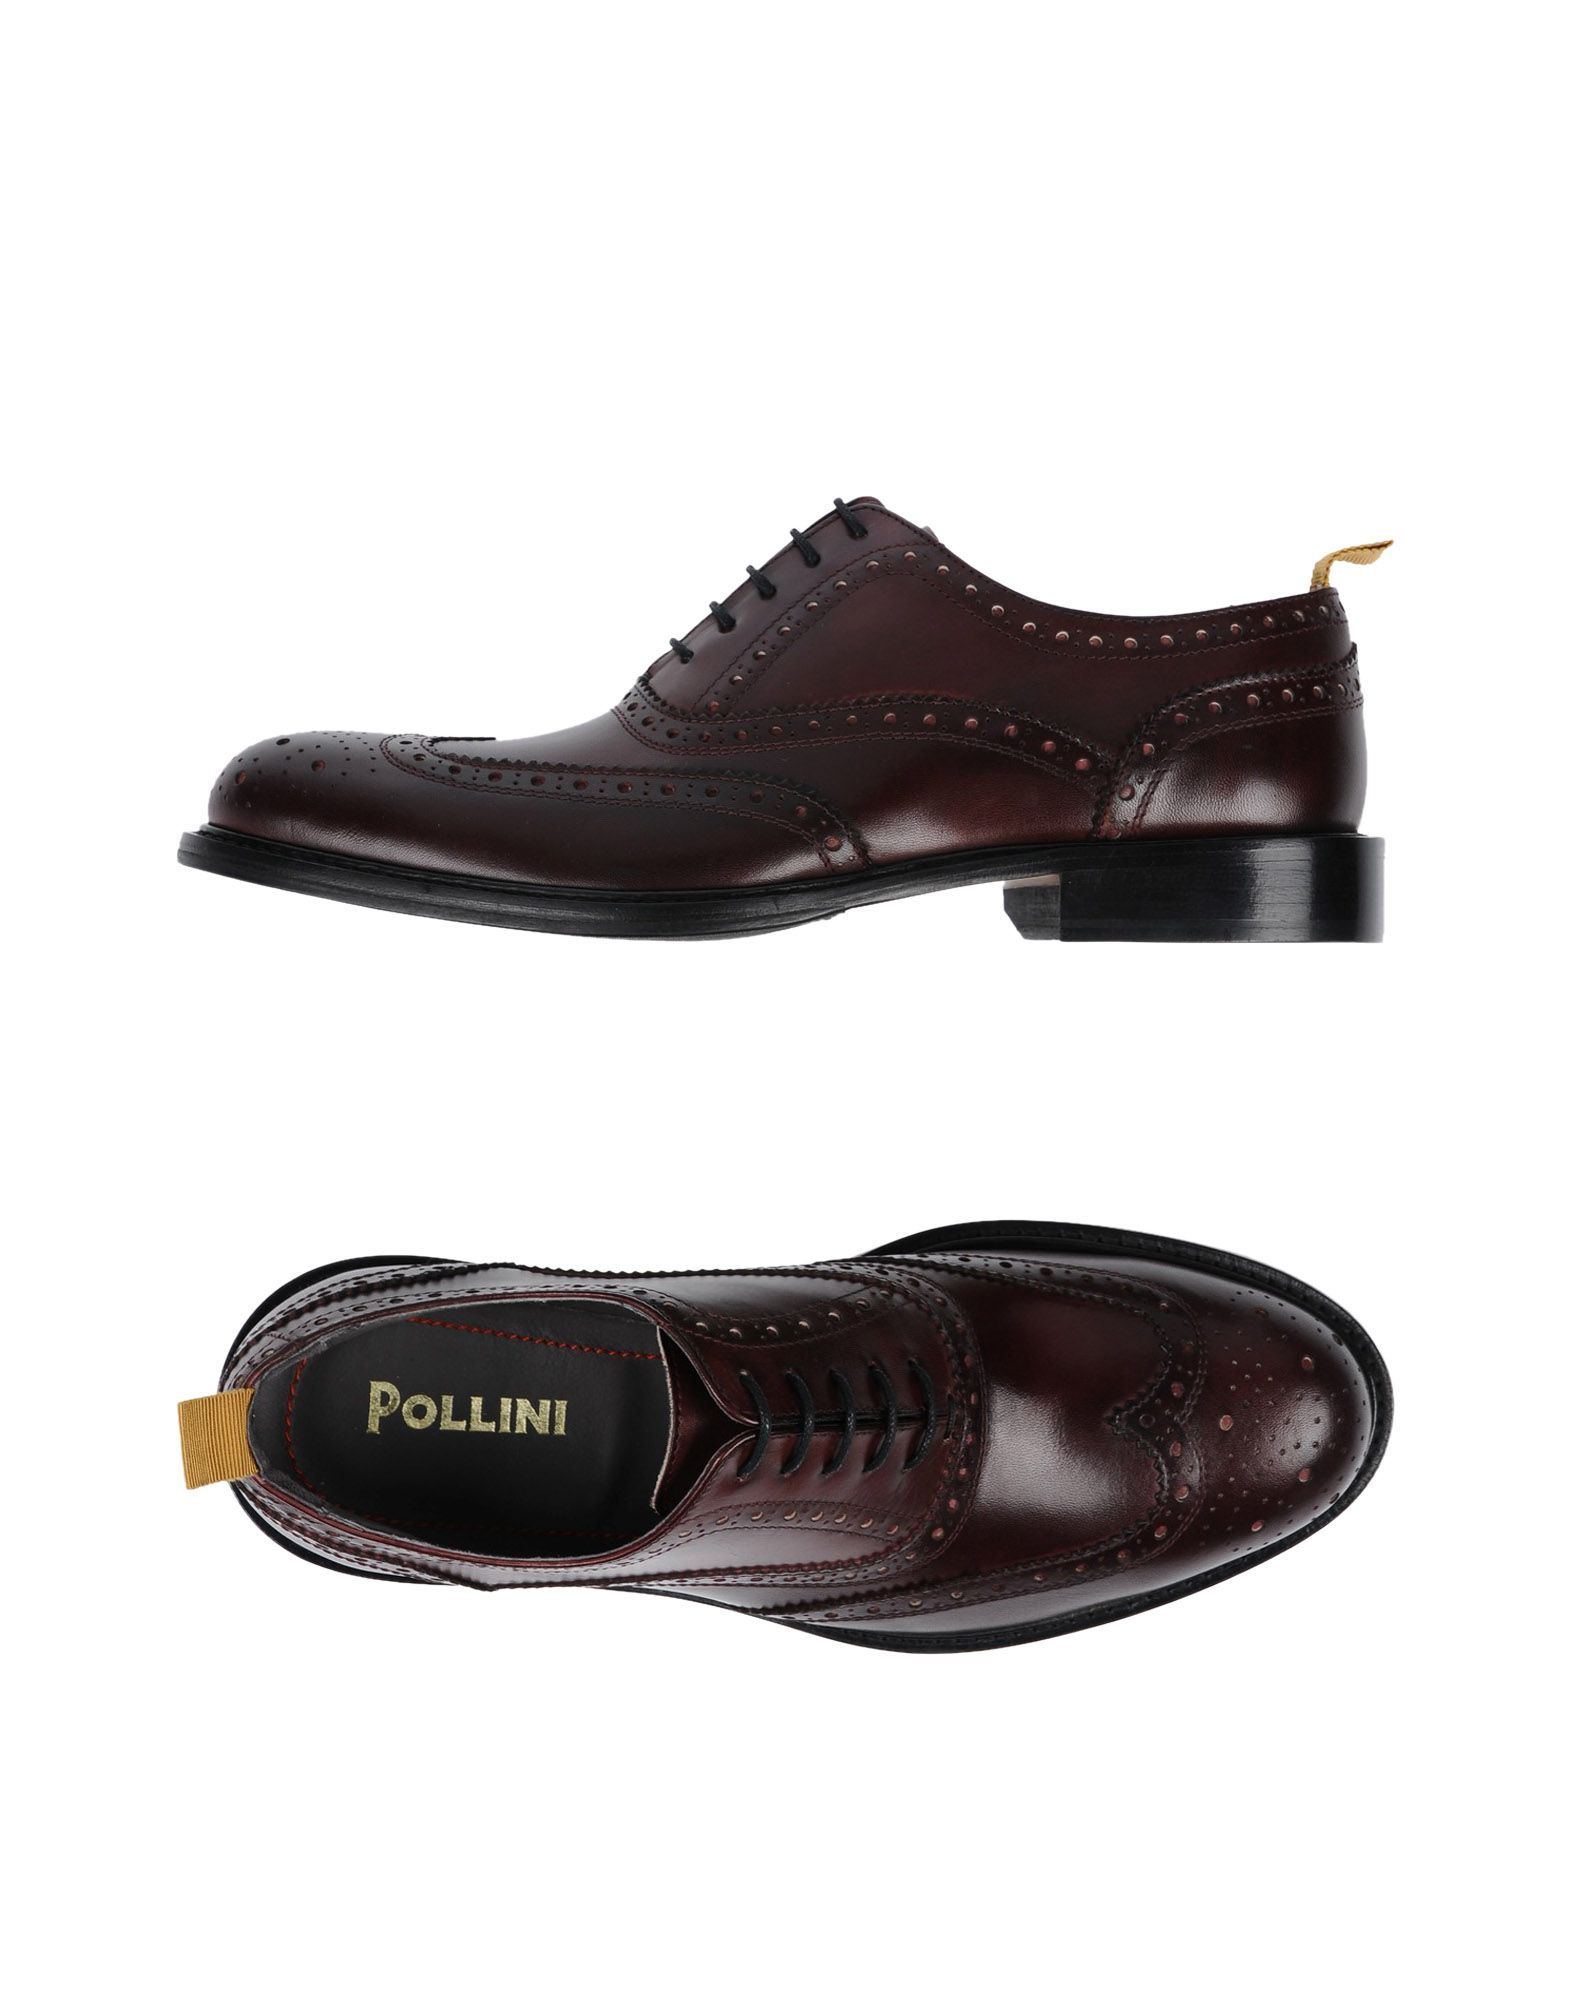 Pollini Laced shoes